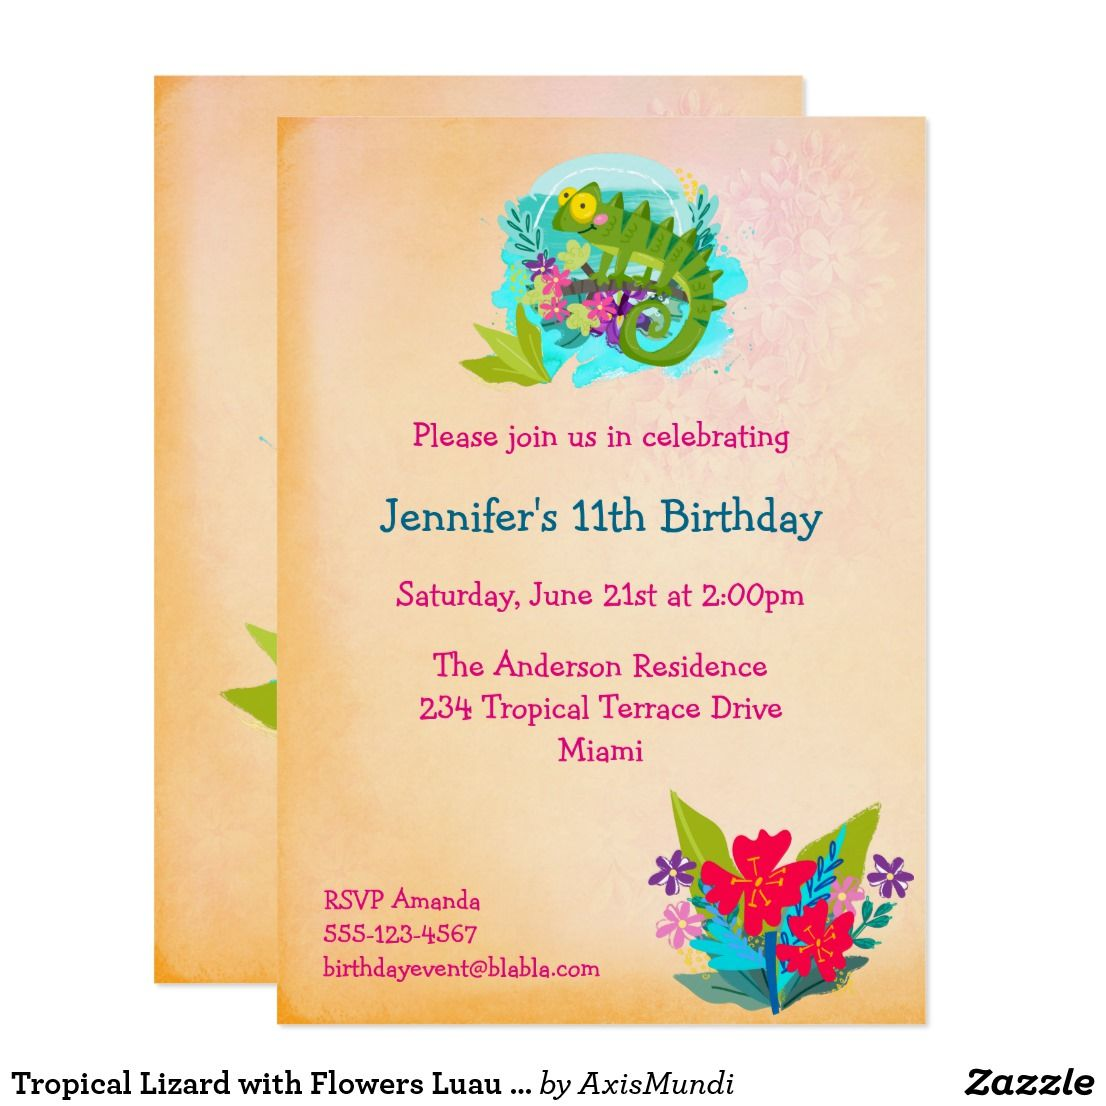 Tropical lizard with flowers luau birthday invite zazzle explore zazzle invitations birthday invitations and more filmwisefo